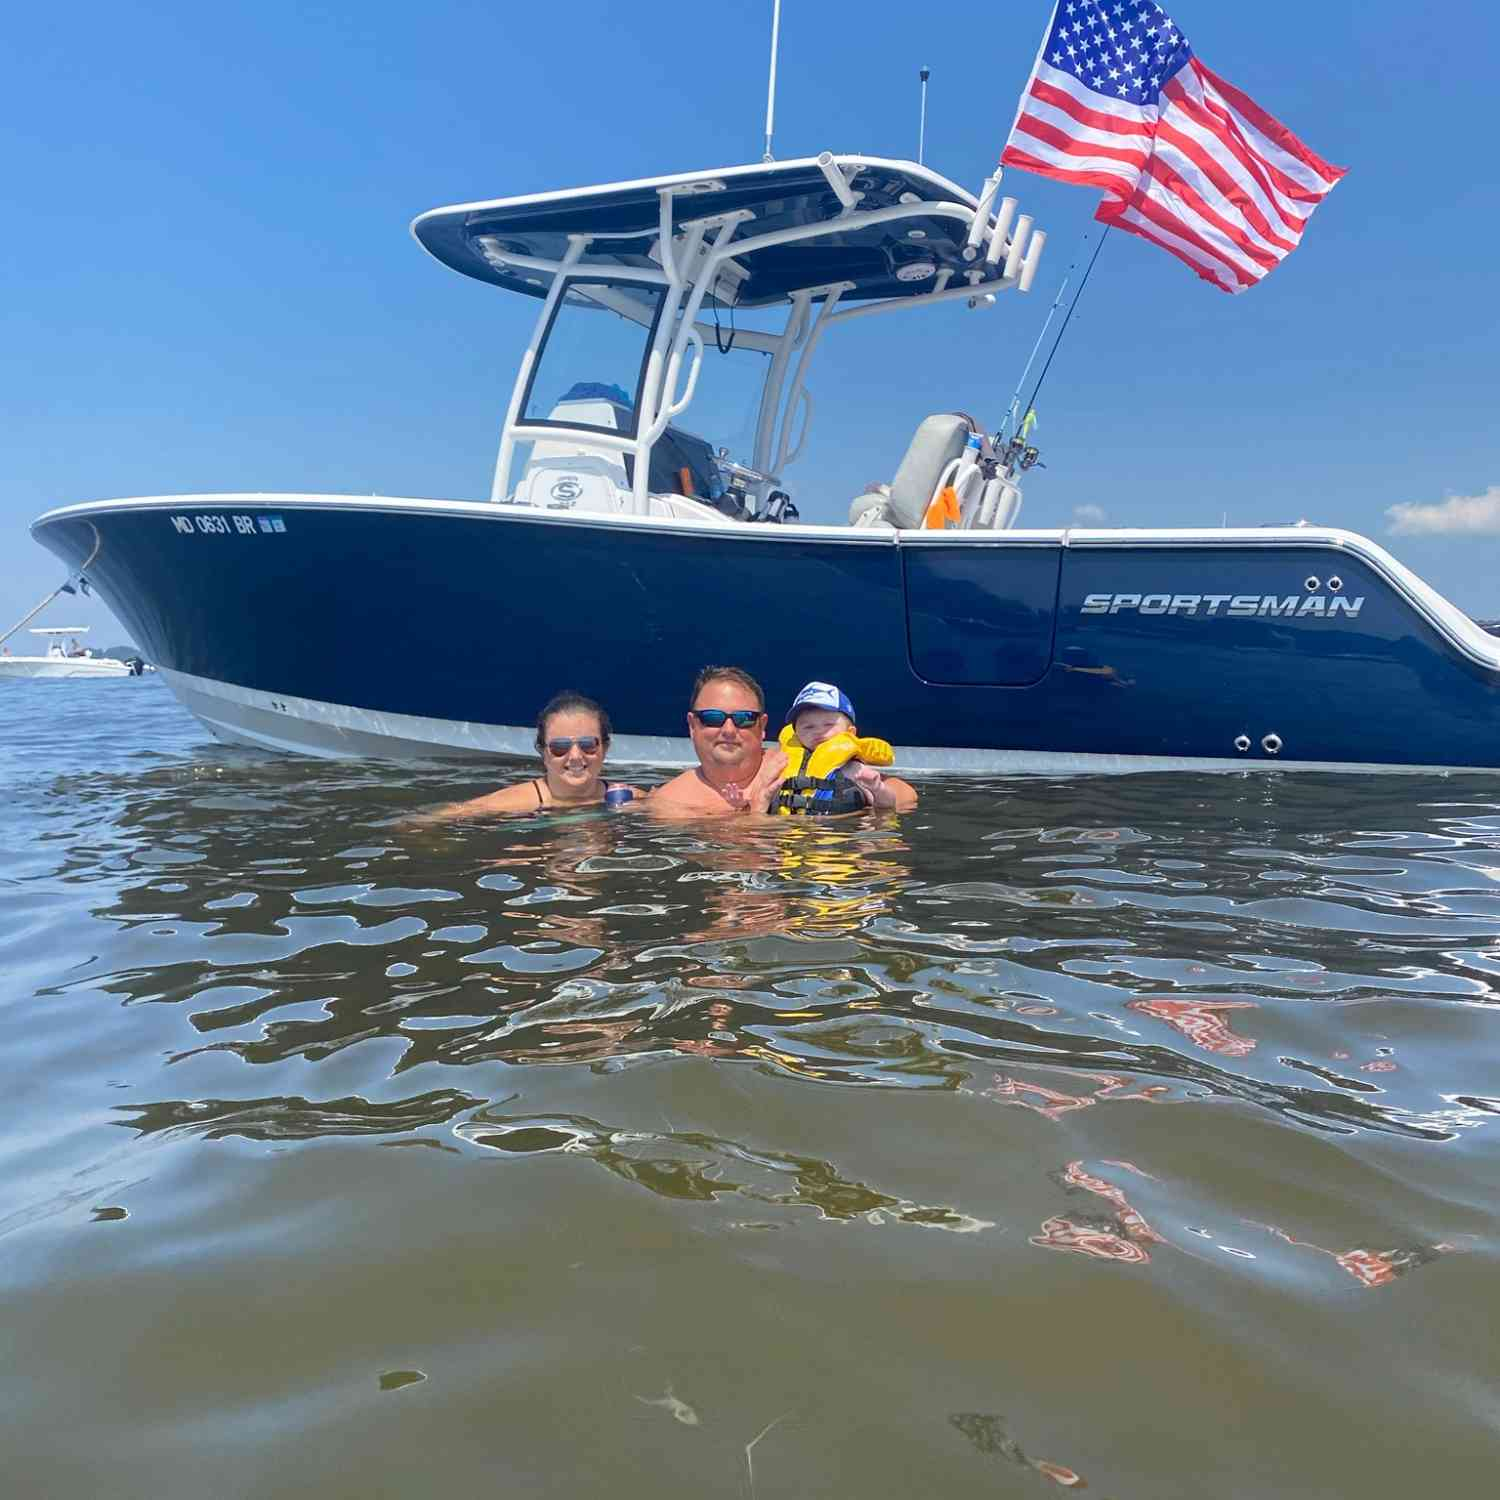 Title: Family day. - On board their Sportsman Open 252 Center Console - Location: Kent island md. Participating in the Photo Contest #SportsmanAugust2020